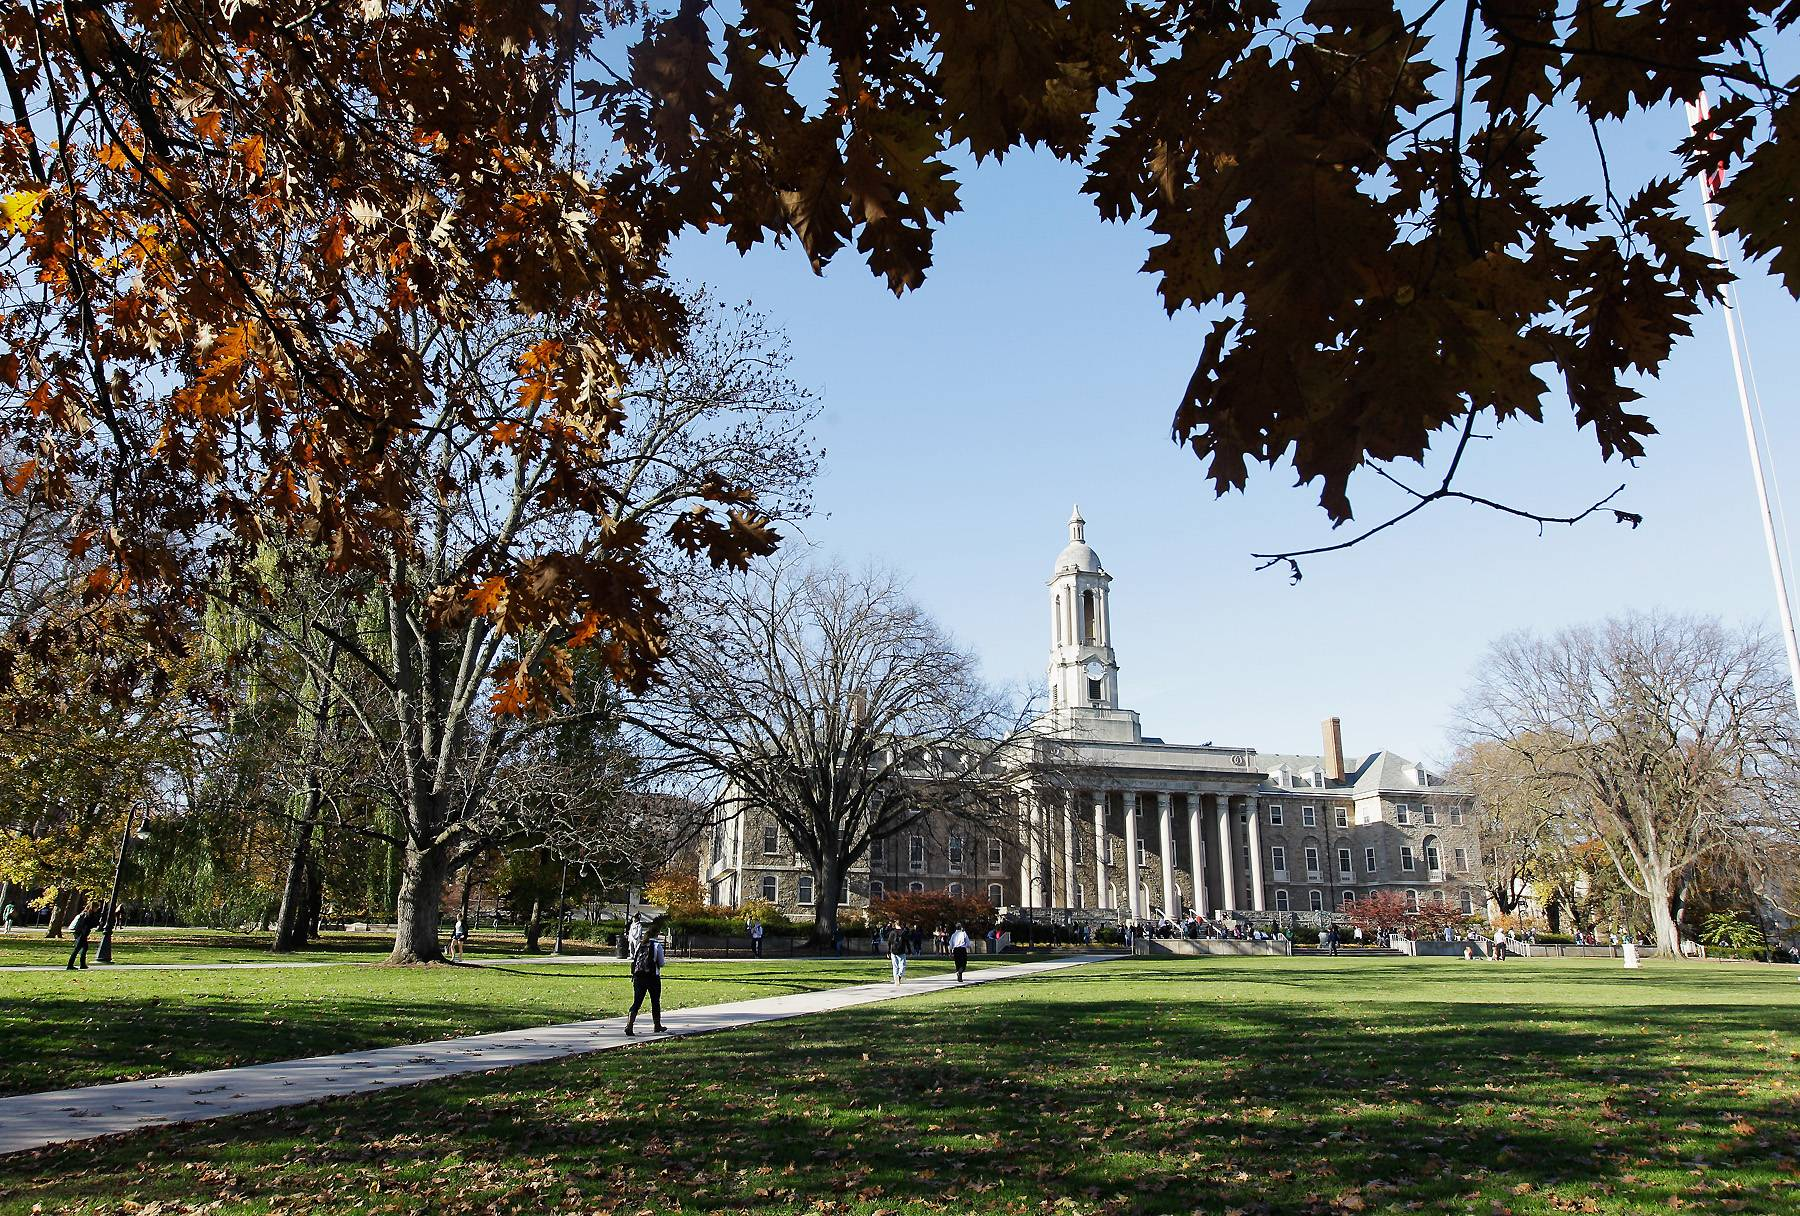 """Penn State Reaches Settlement with Sandusky Victims - Last Week, Penn State University's board of trustees voted to approve settlement offers to some of the victims of Jerry Sandusky's child-sex abuse, Deadspin reported. While the settlements were not made public, a local Philadelphia newspaper pegged the offers """"in the close proximity of"""" $60 million.(Photo: Rob Carr/Getty Images)"""